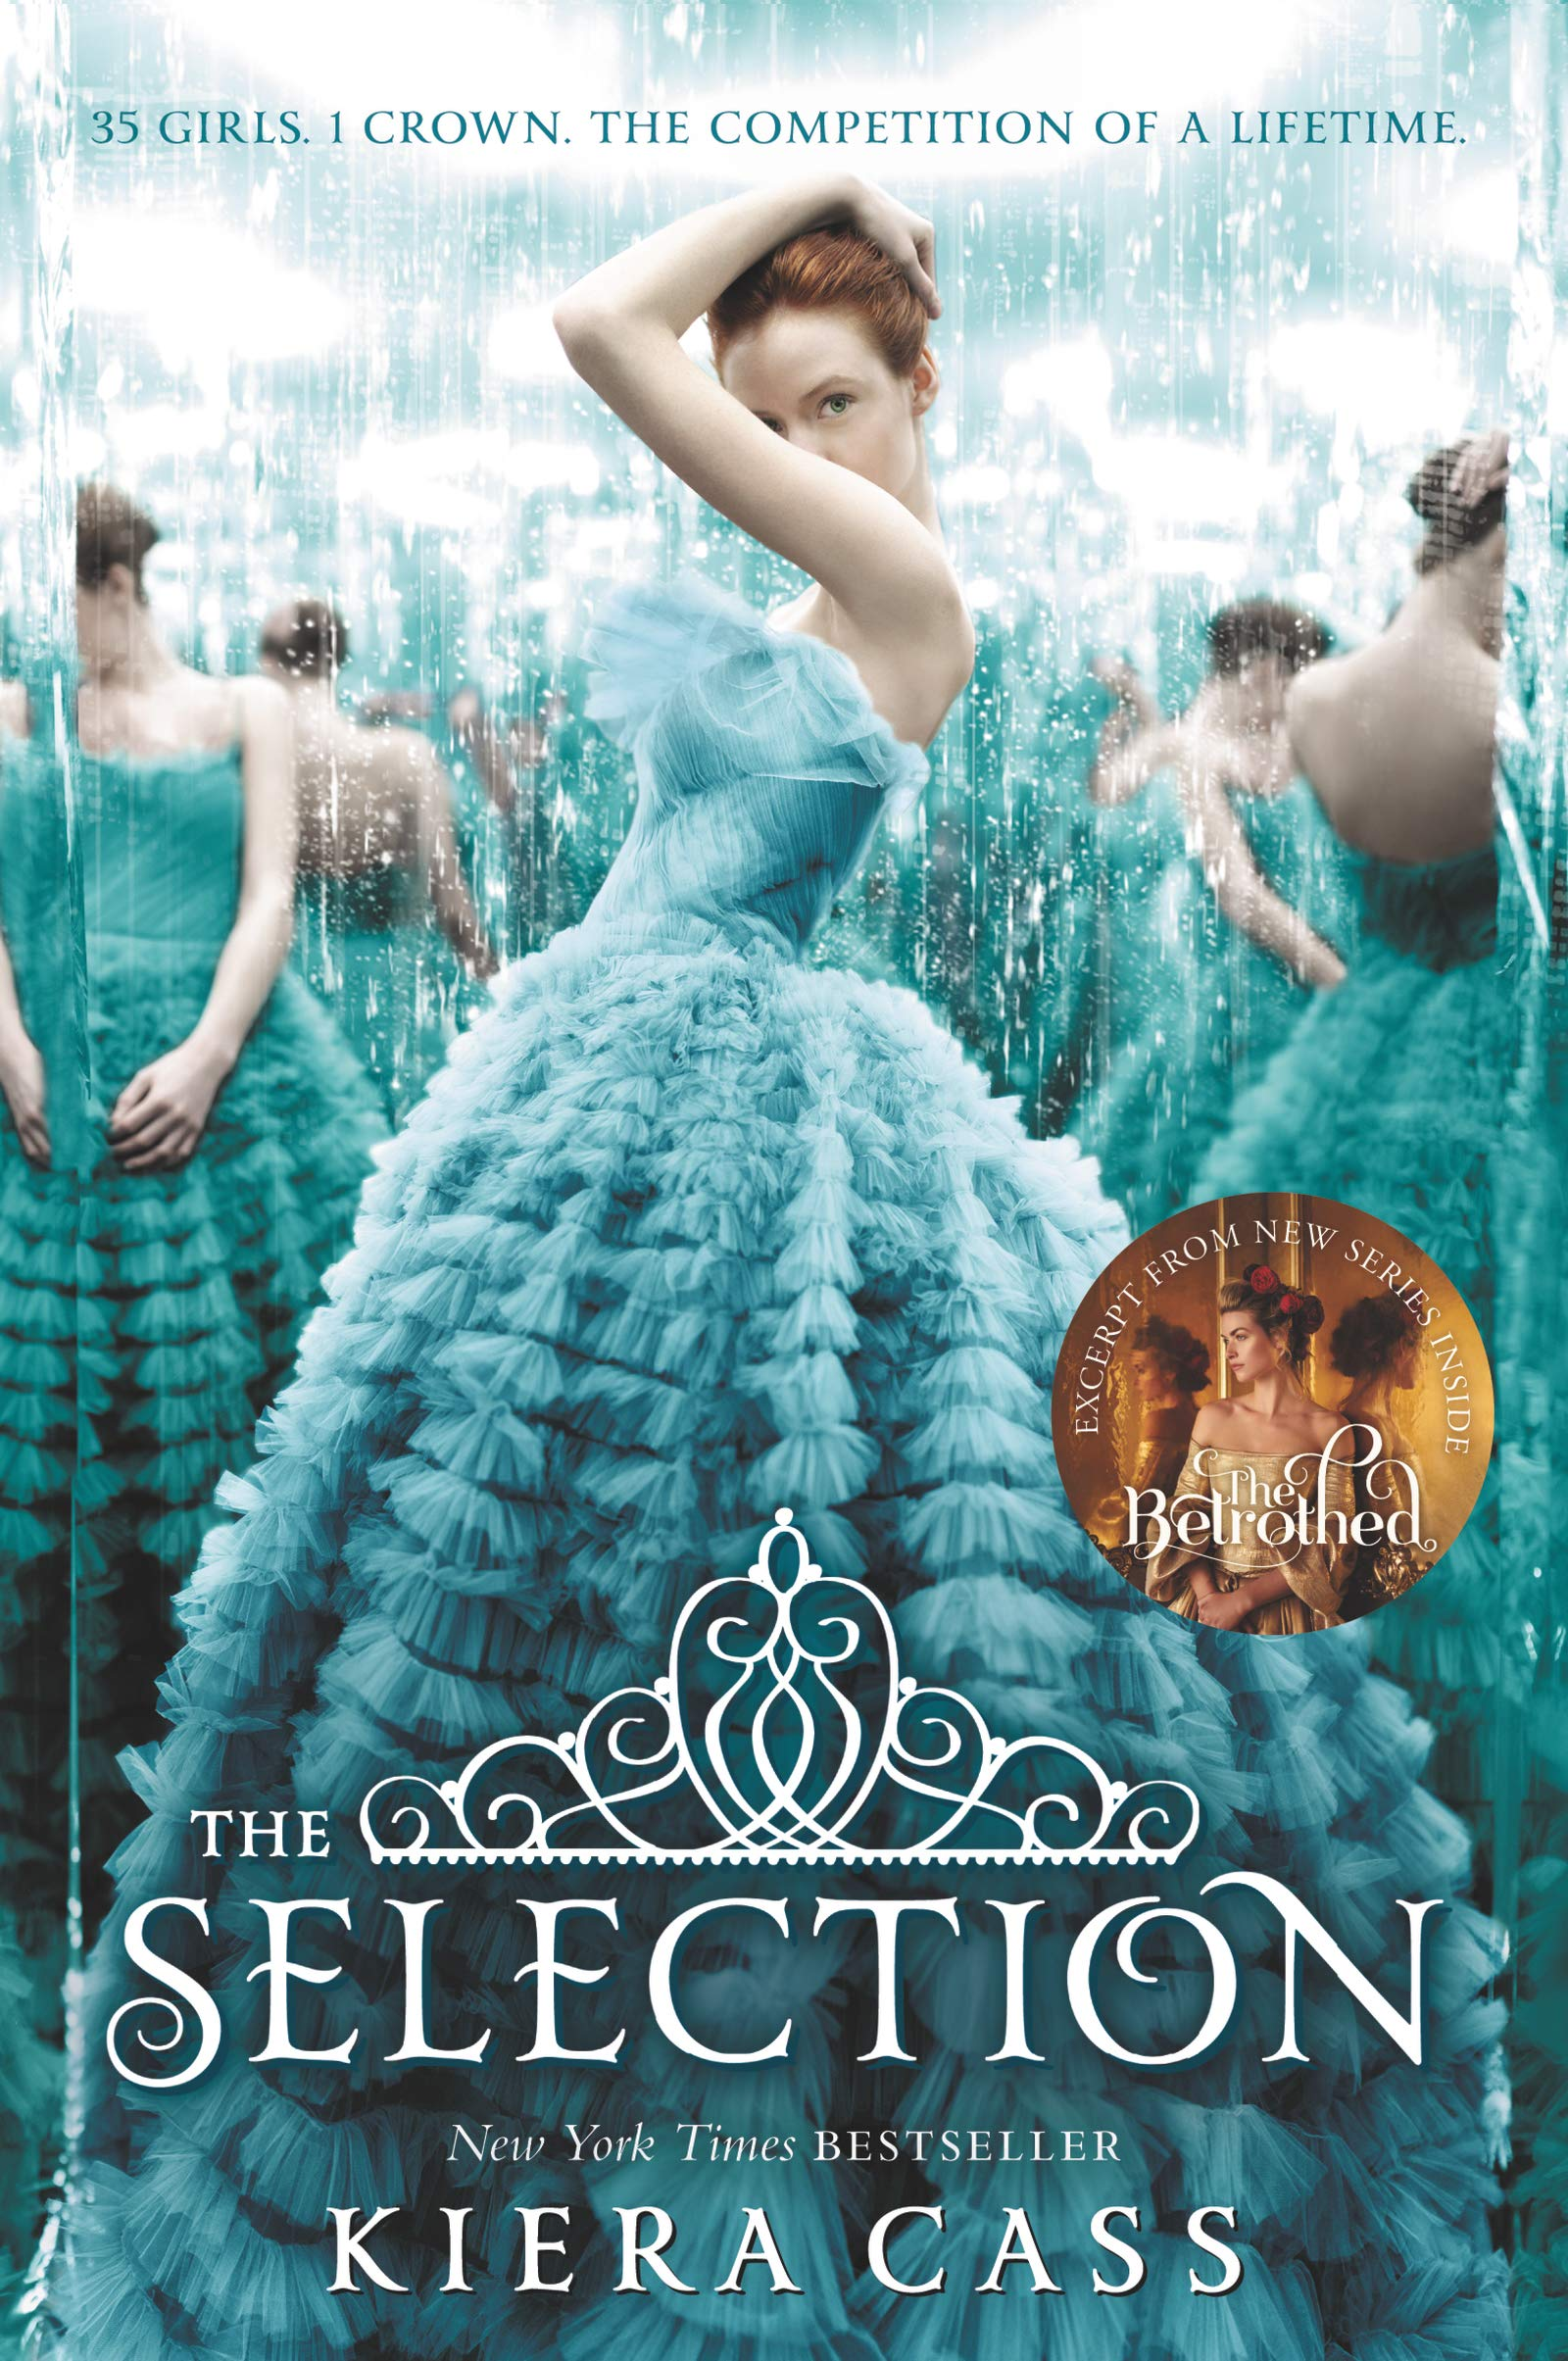 Amazon.com: The Selection (The Selection, 1): Cass, Kiera: Books